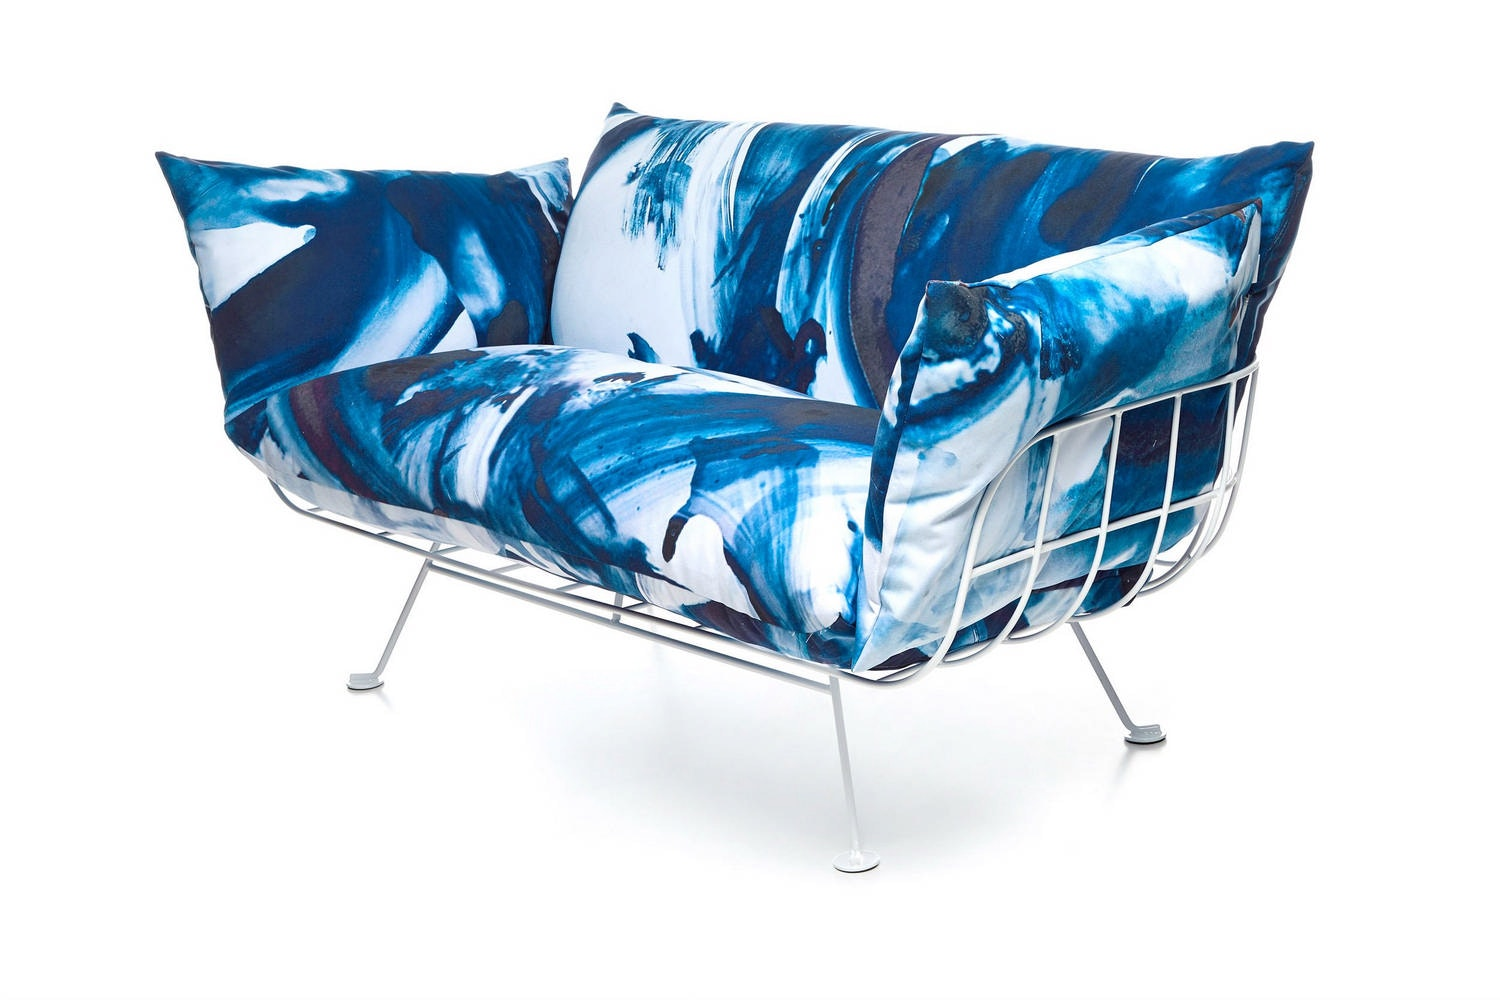 Nest Sofa by Marcel Wanders for Moooi